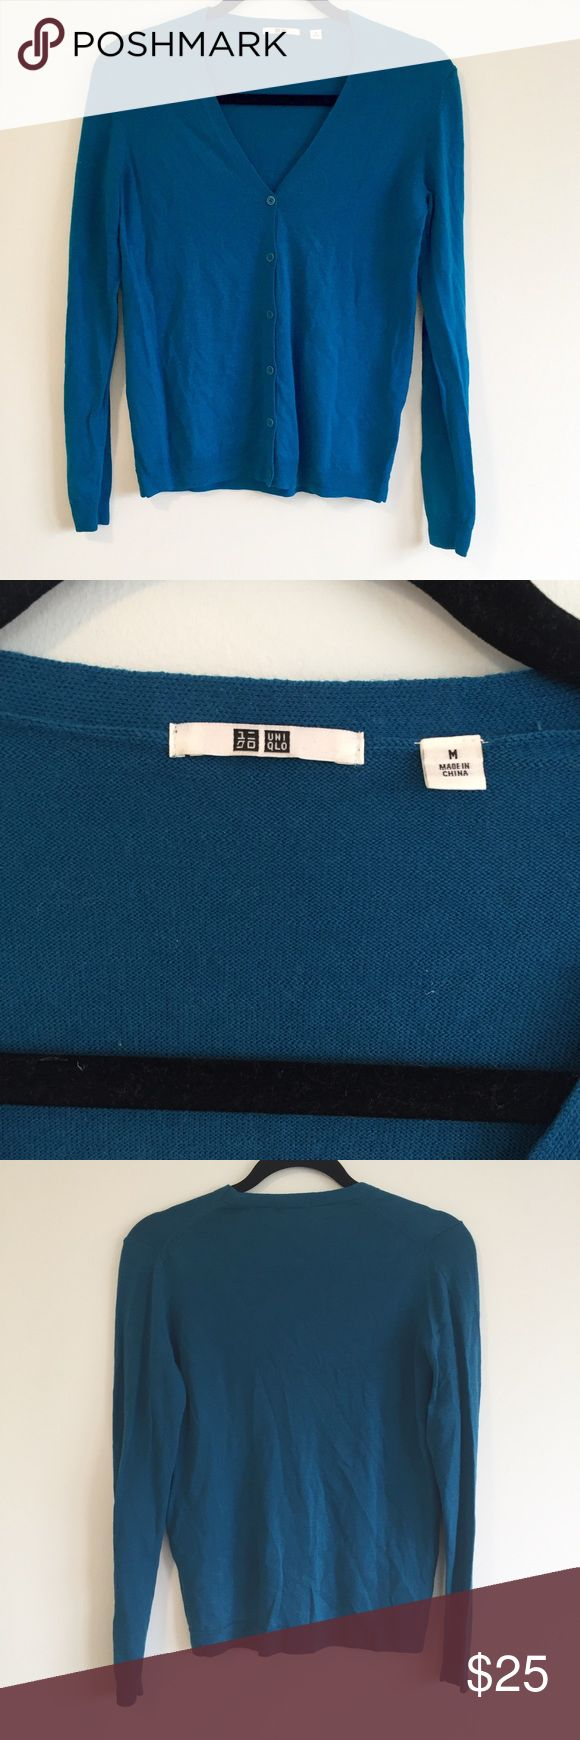 """NWOT - Uniqlo Turquoise Cardigan Brand new and very soft turquoise blue green cardigan. Measures 19"""" bust, 22.5"""" length and 24"""" sleeves. Uniqlo Sweaters Cardigans"""